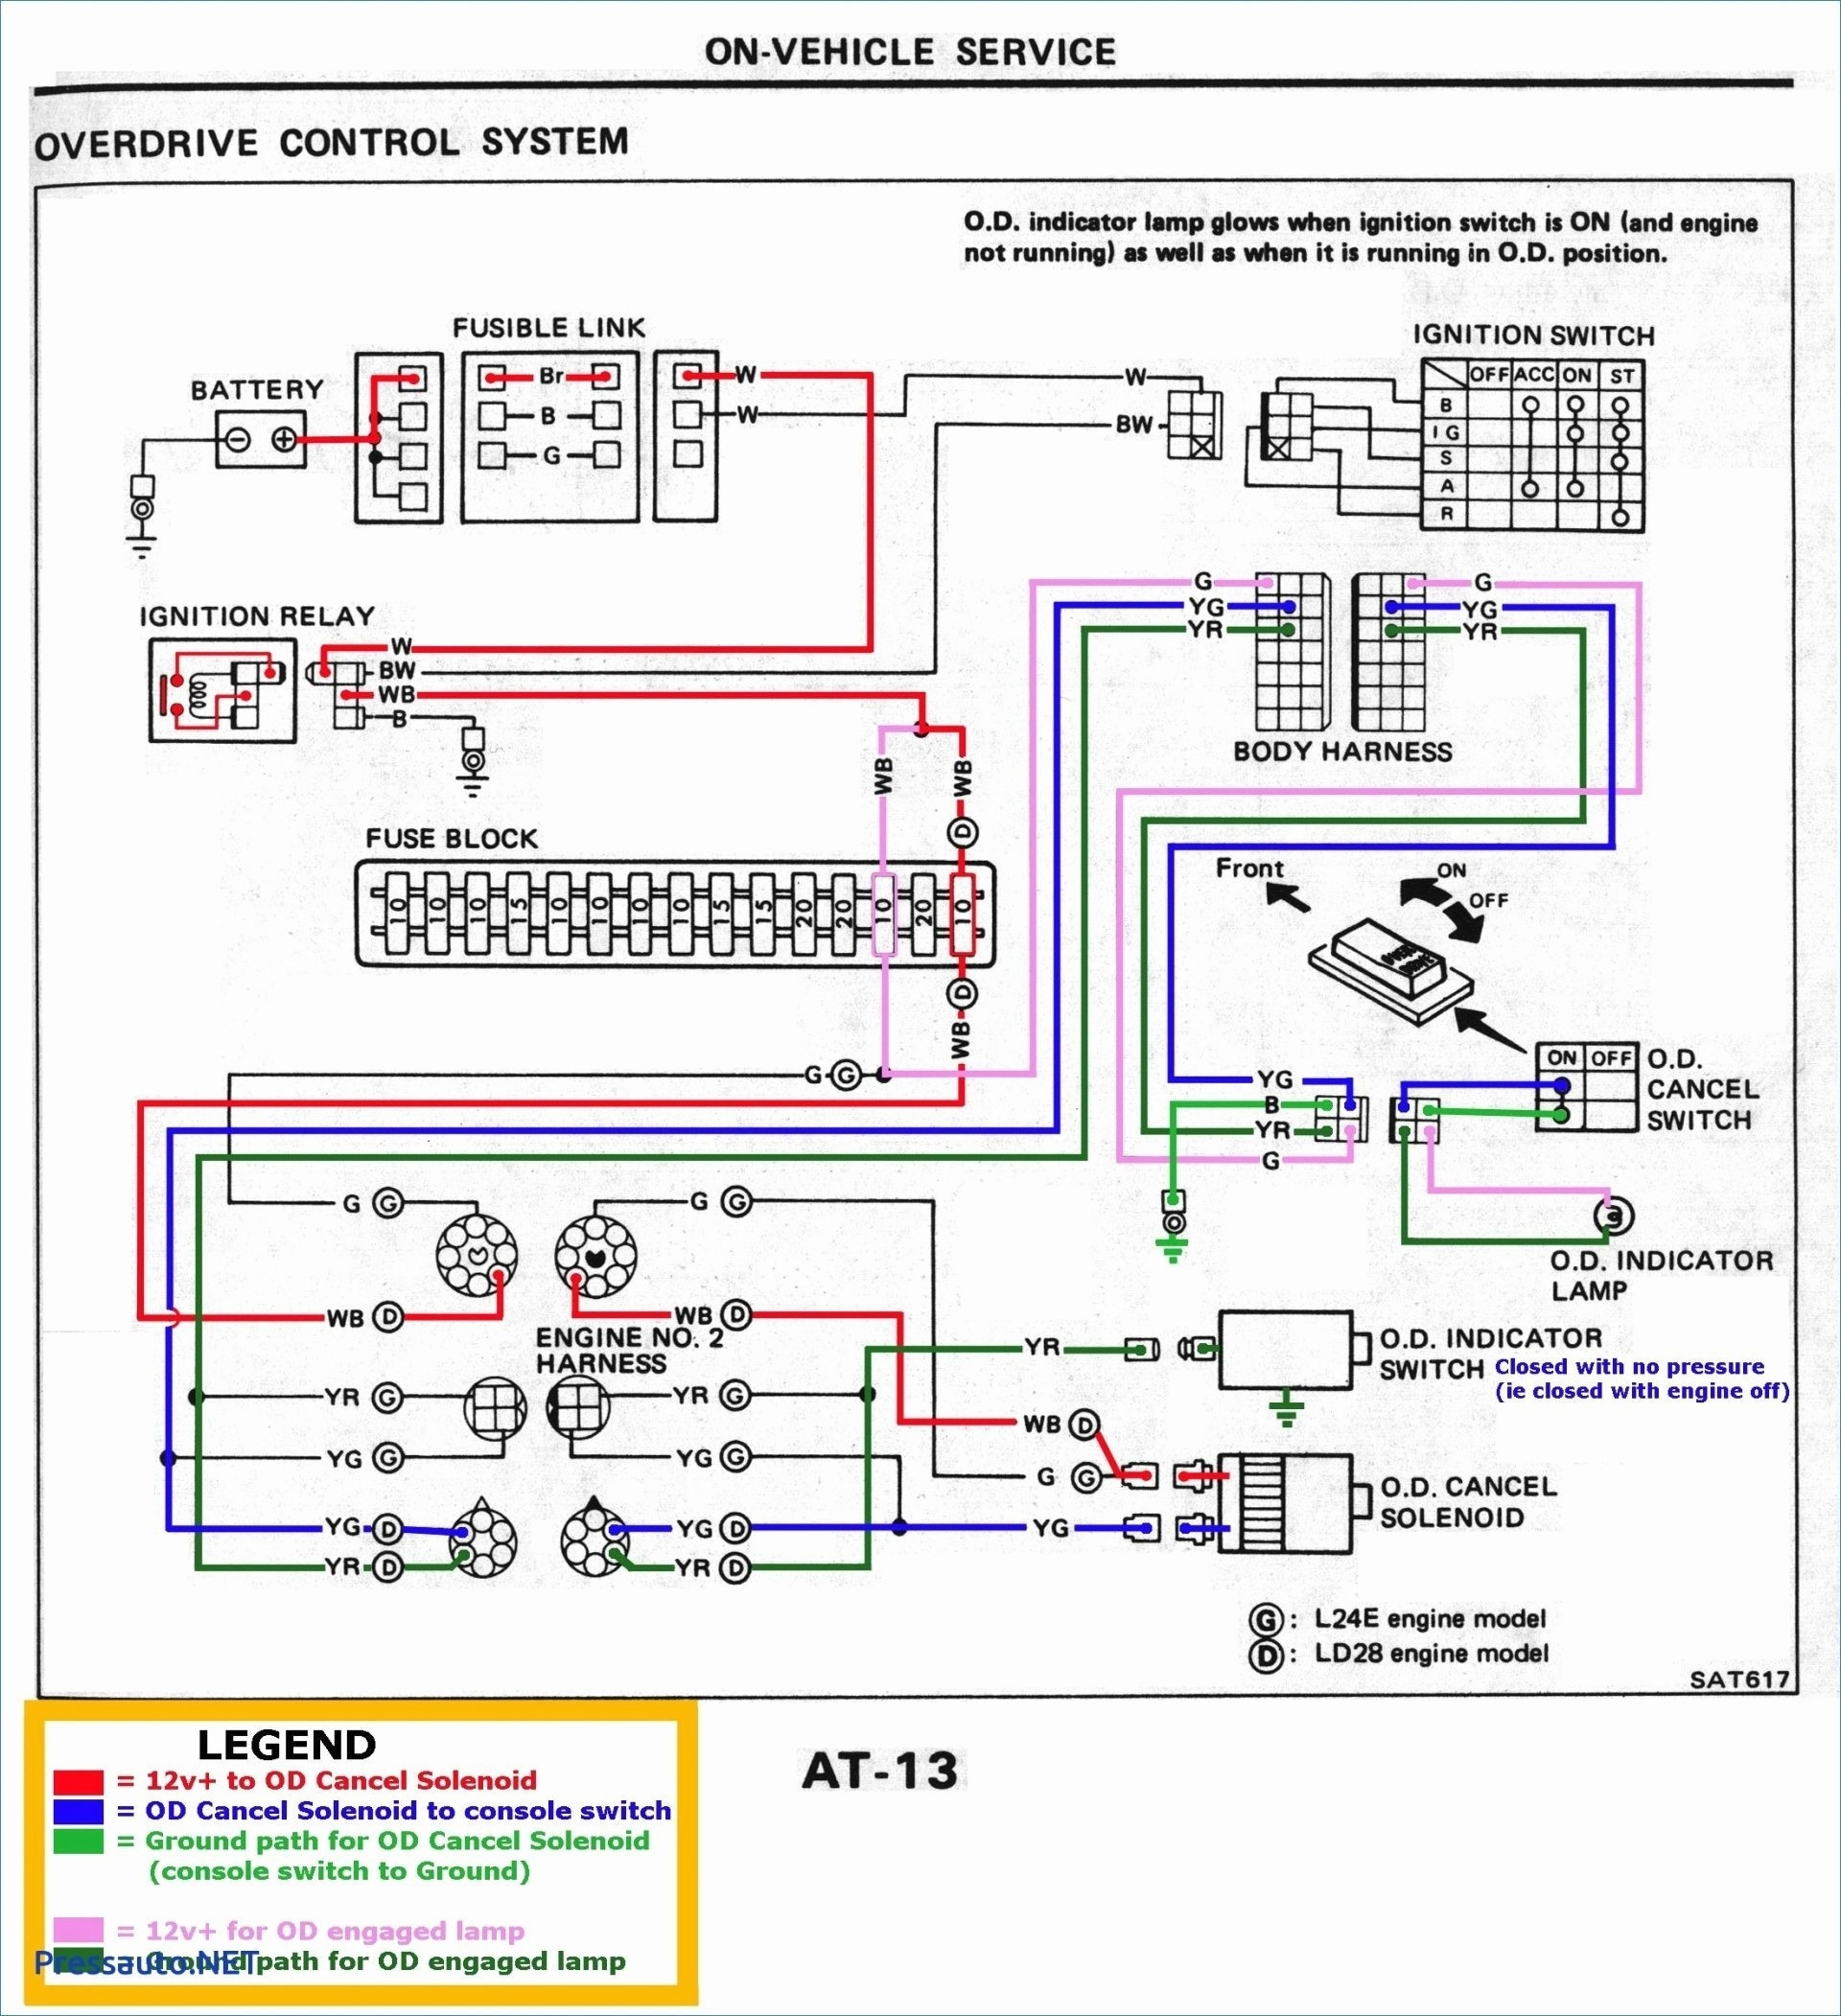 3117E Sensor Wiring Diagram | Digital Resources on electrical motor connections, electrical service connections, electrical wire connections, electrical lights, electrical meters, electrical plug connections, electrical hardware, transformer electrical connections, electrical connection to house, bad electrical connections, electrical test connections, electrical fuses, electrical harness connections, electrical panel connections, poor electrical connections, electrical switch connections, electrical capacitors, electrical connections diagrams, electrical conduit connections,